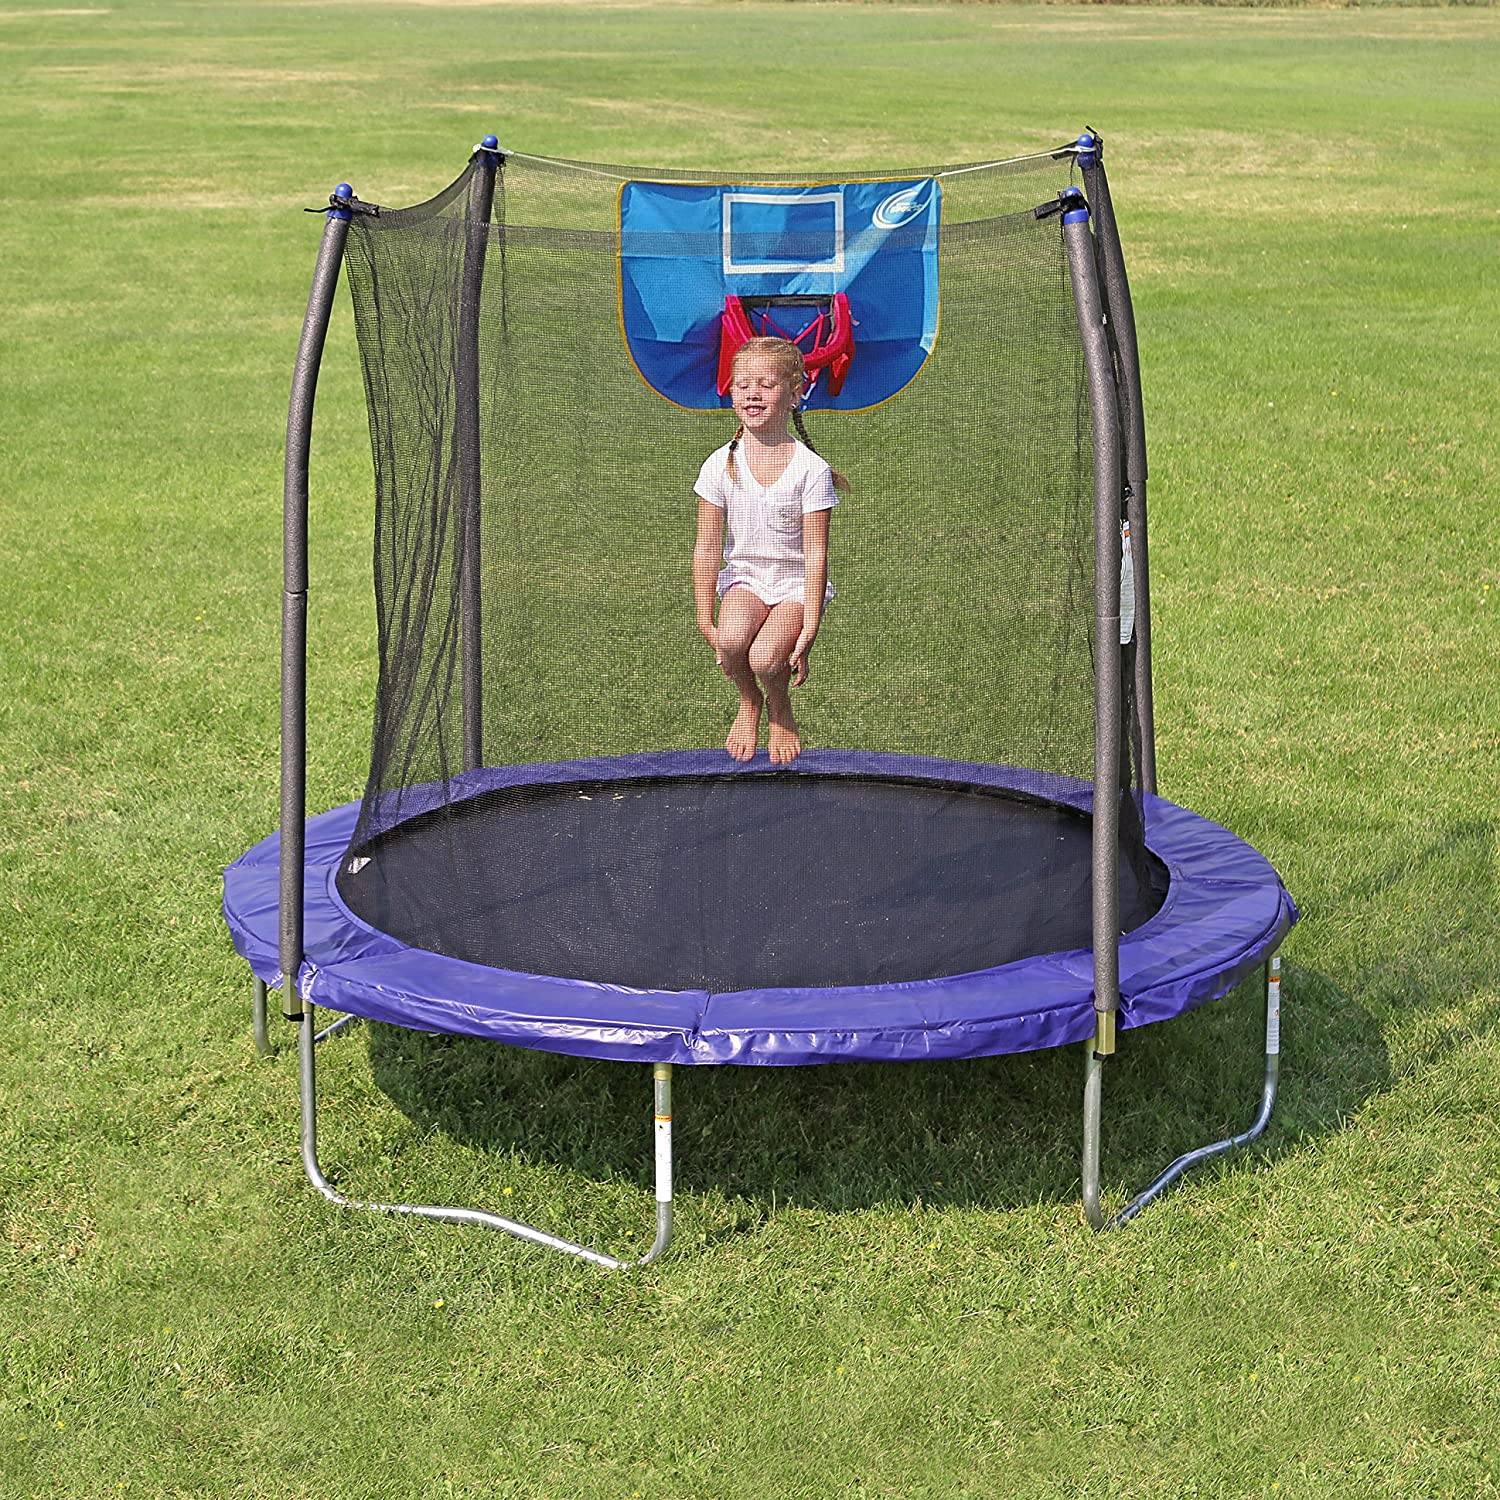 Skywalker Trampolines Jump N' Dunk Trampoline with Safety Enclosure